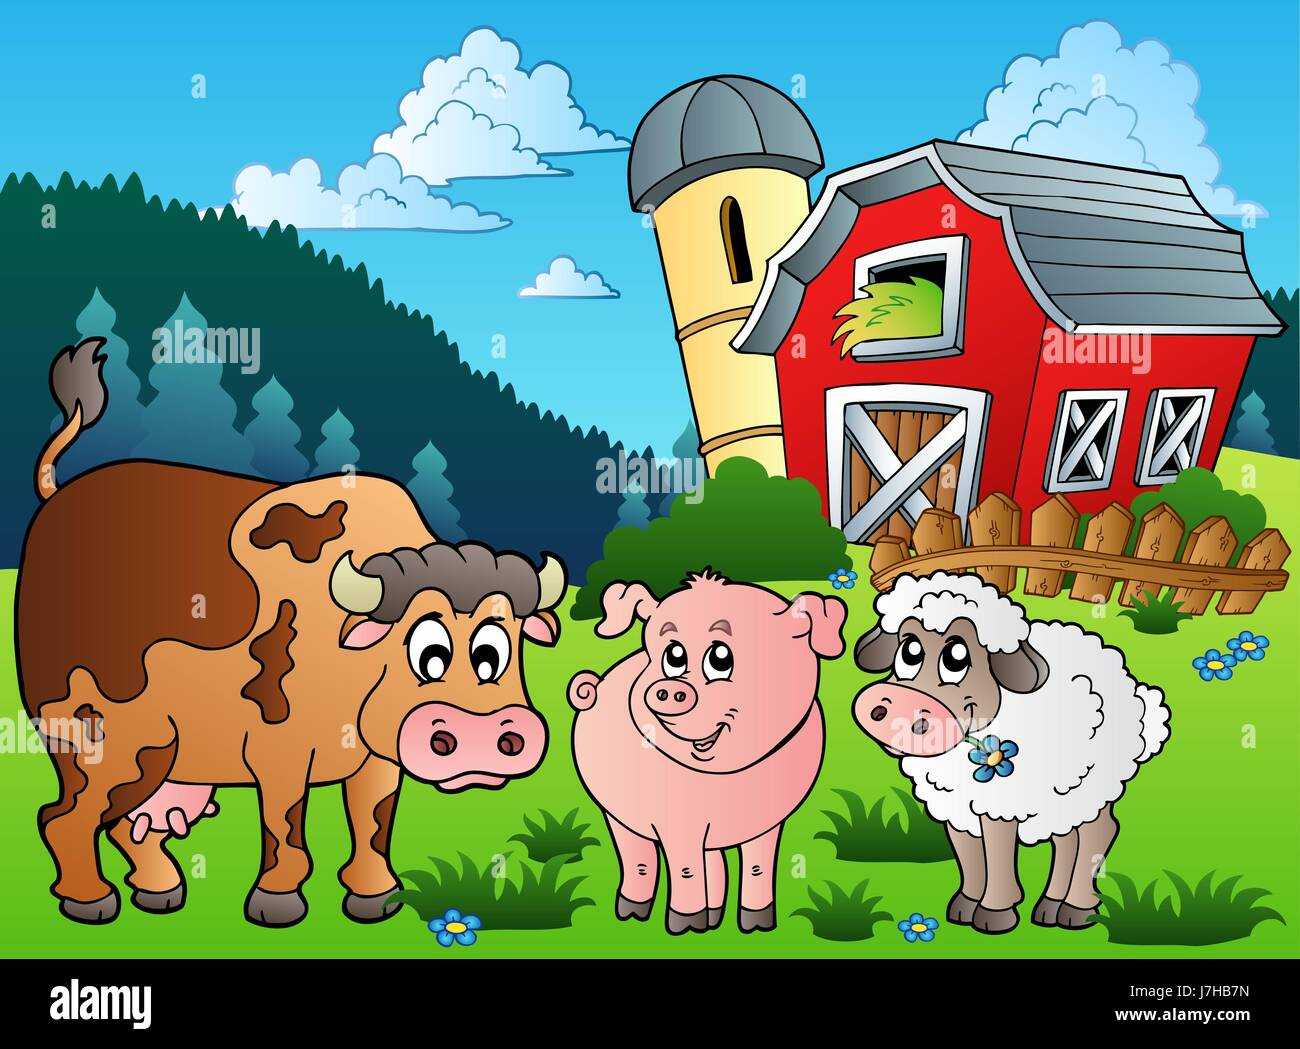 Animal Mammal Fauna Sheep Cow Barn Pig House Building Tower Agricultural Art